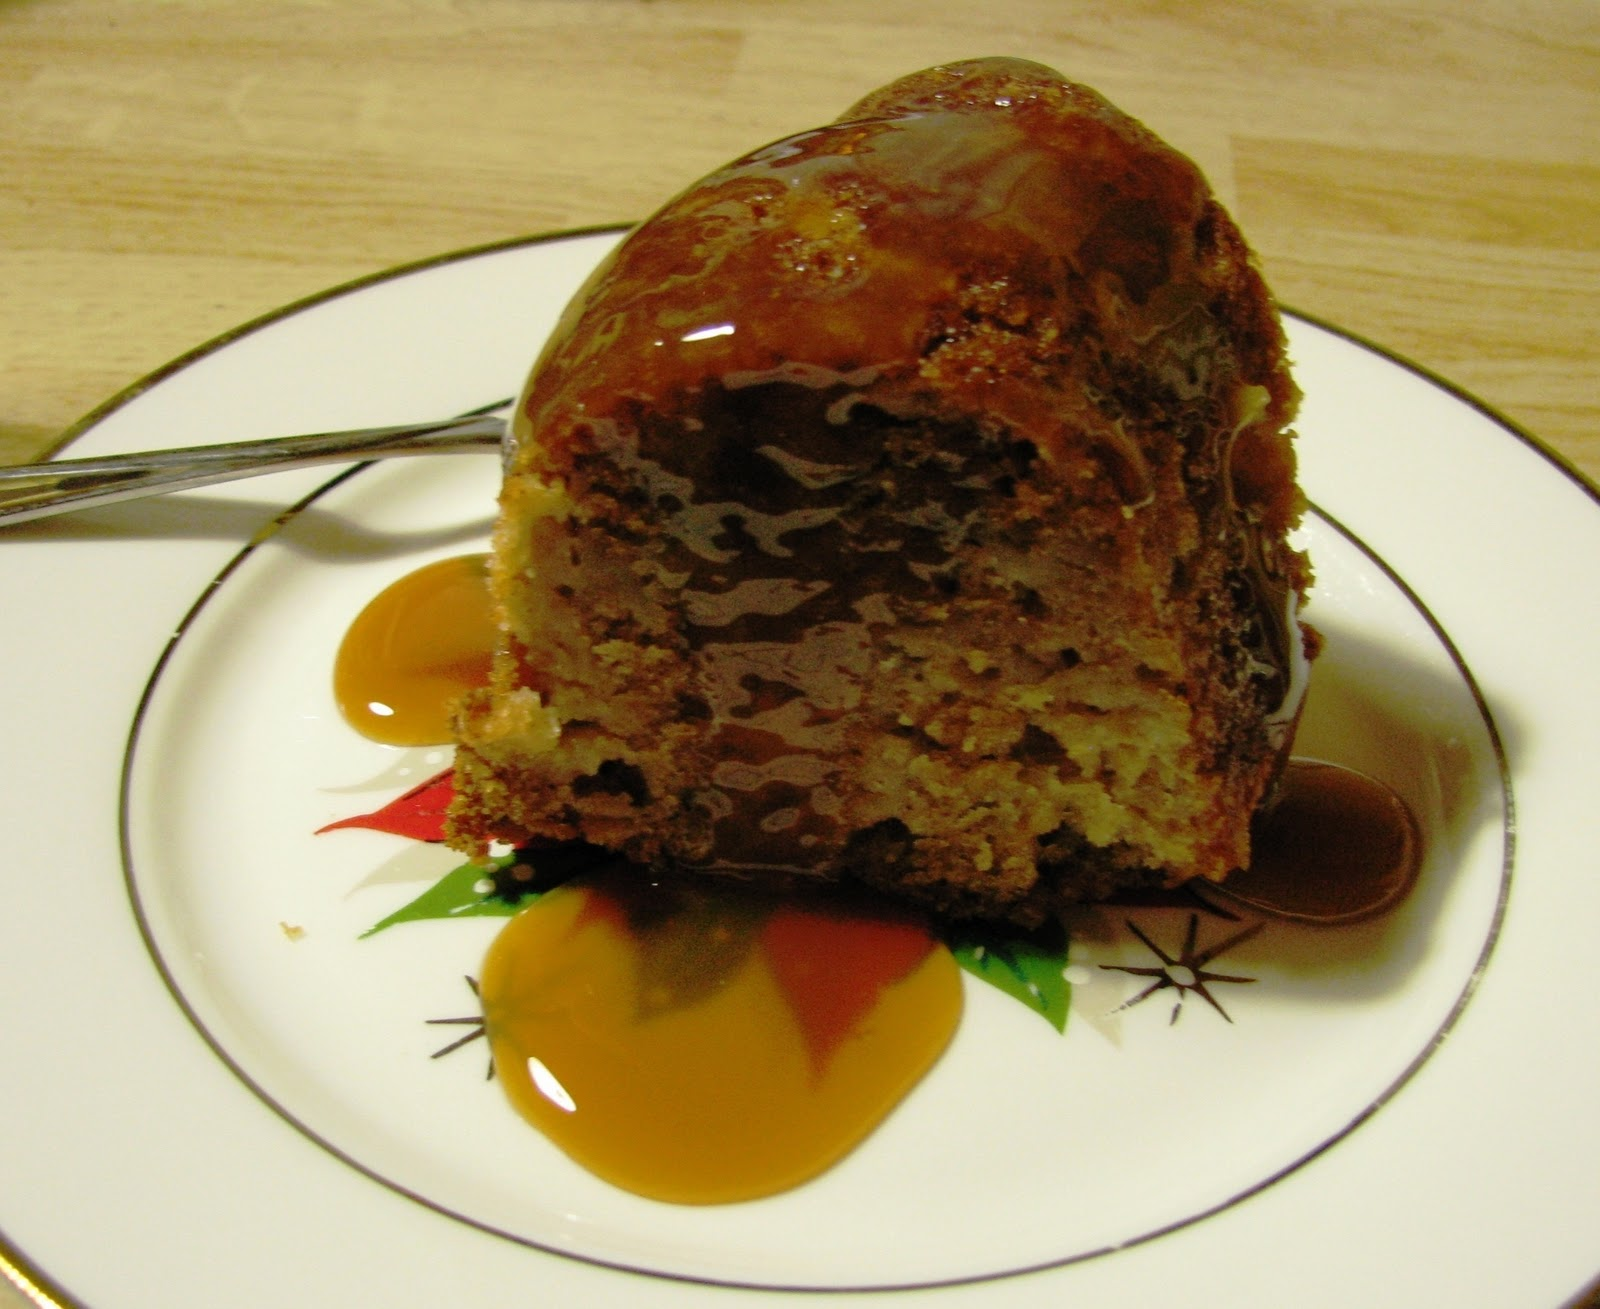 next how about this deliciously moist apple honey bundt cake